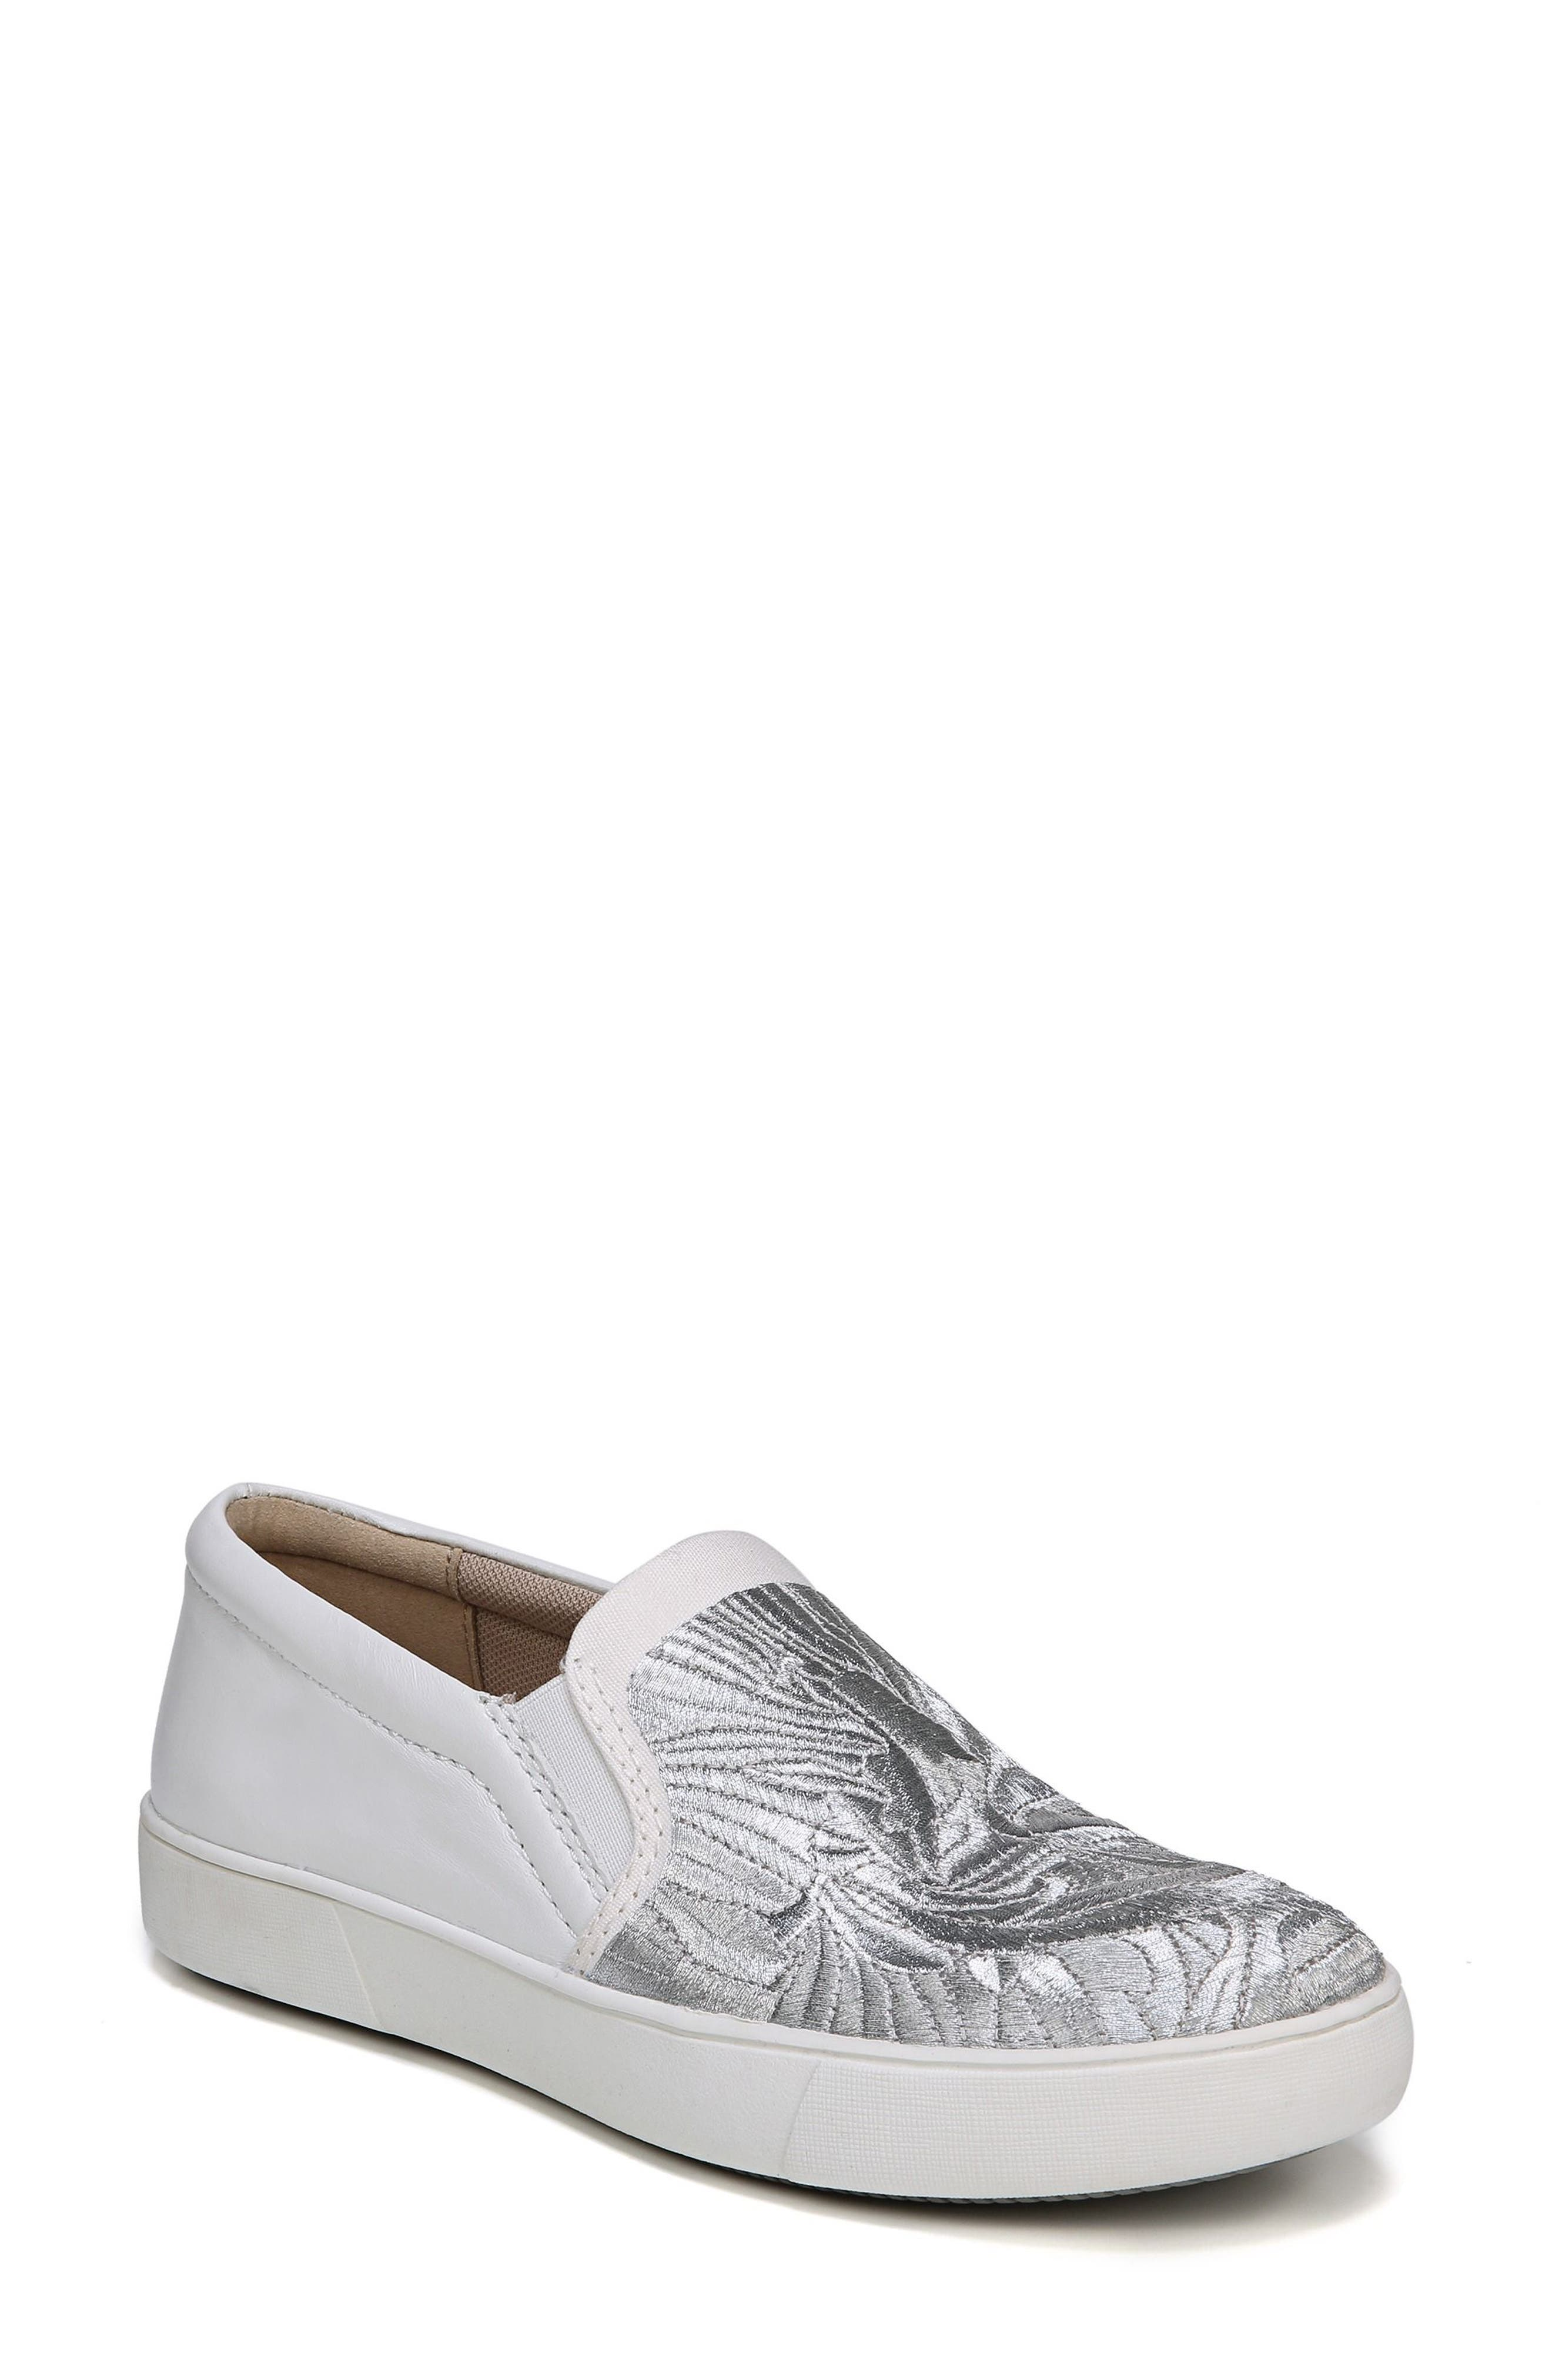 Marianne Slip-On Sneaker,                         Main,                         color, White/ Silver Leather